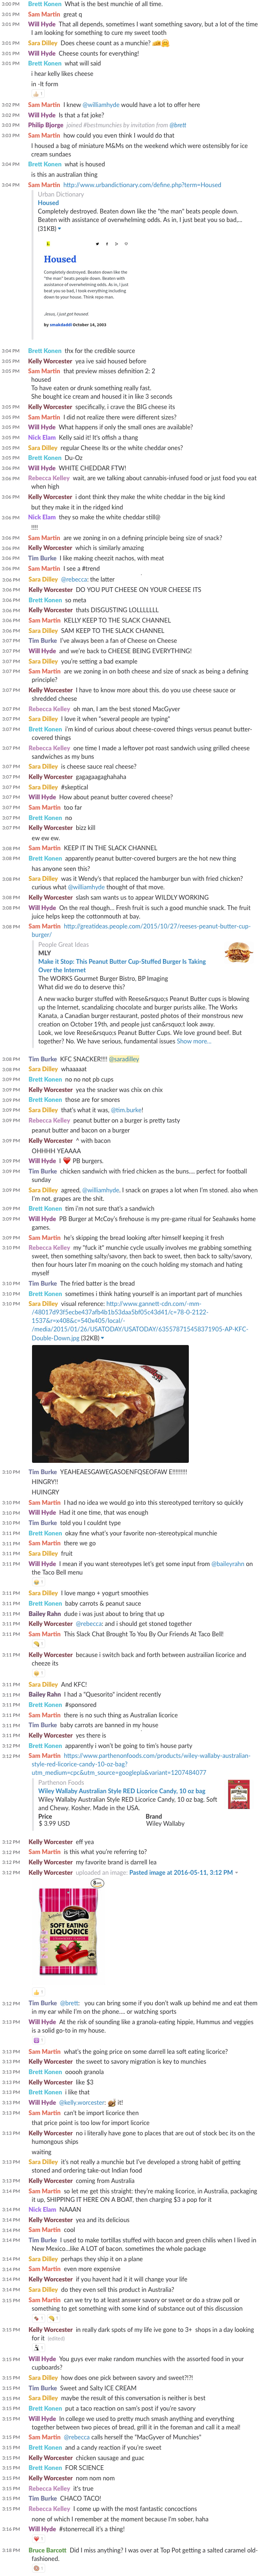 Leafly slack chat discussion about the best cannabis munchie